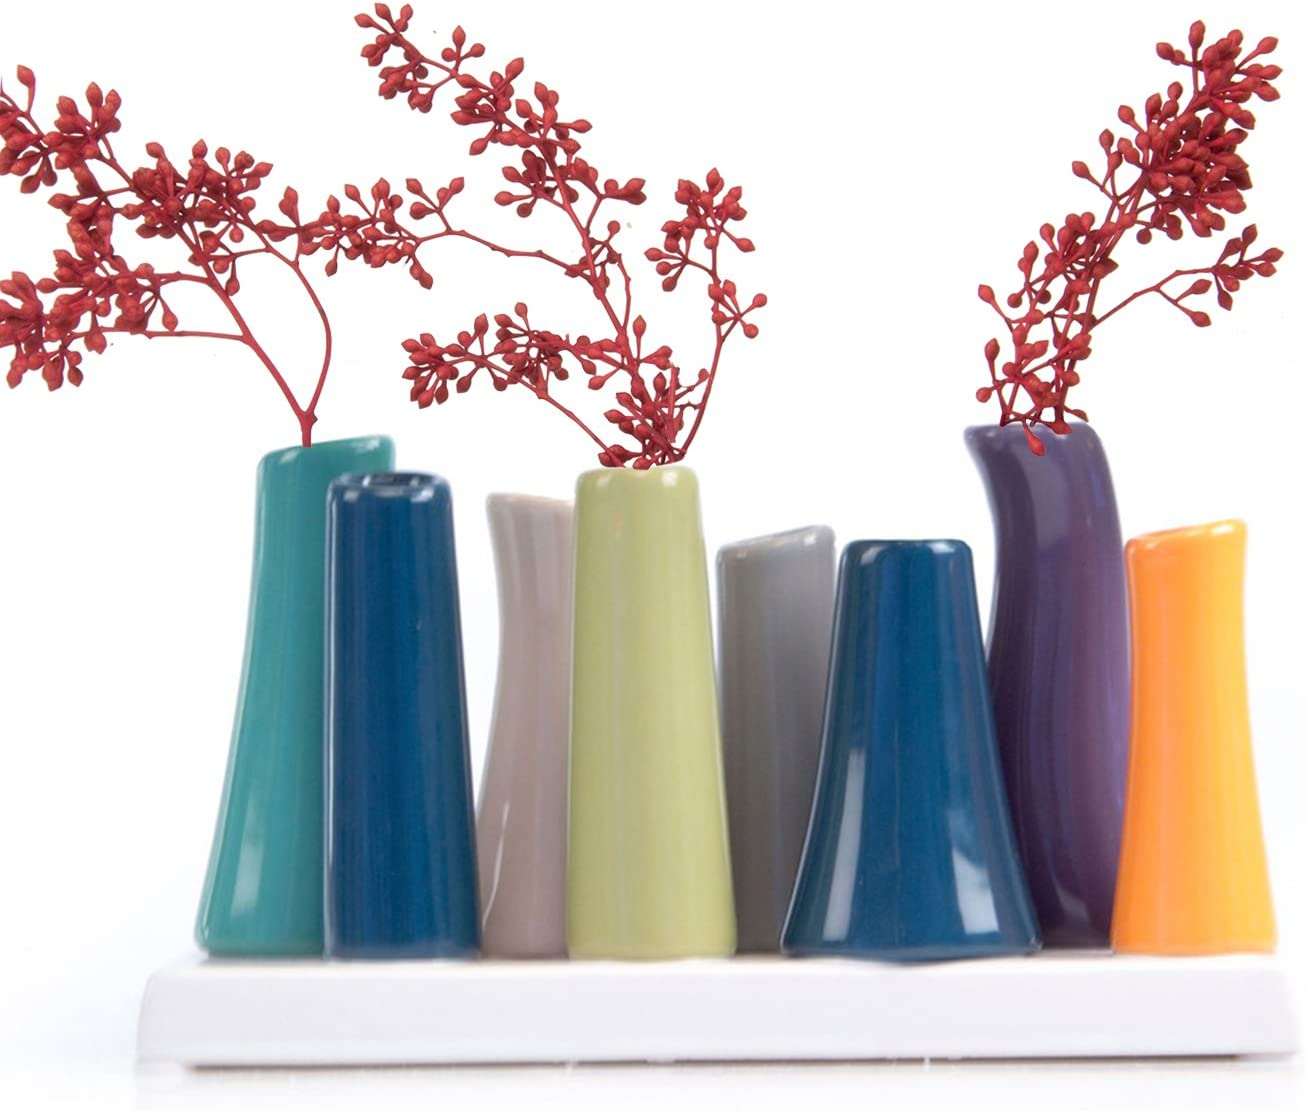 Chive - Pooley 2, Unique Rectangle Ceramic Flower Vase, Small Bud Vase, Decorative Floral Vase for Home Decor, Table Top Centerpieces, Arranging Bouquets, Set of 8 Tubes Connected (Emerald Green Blue)